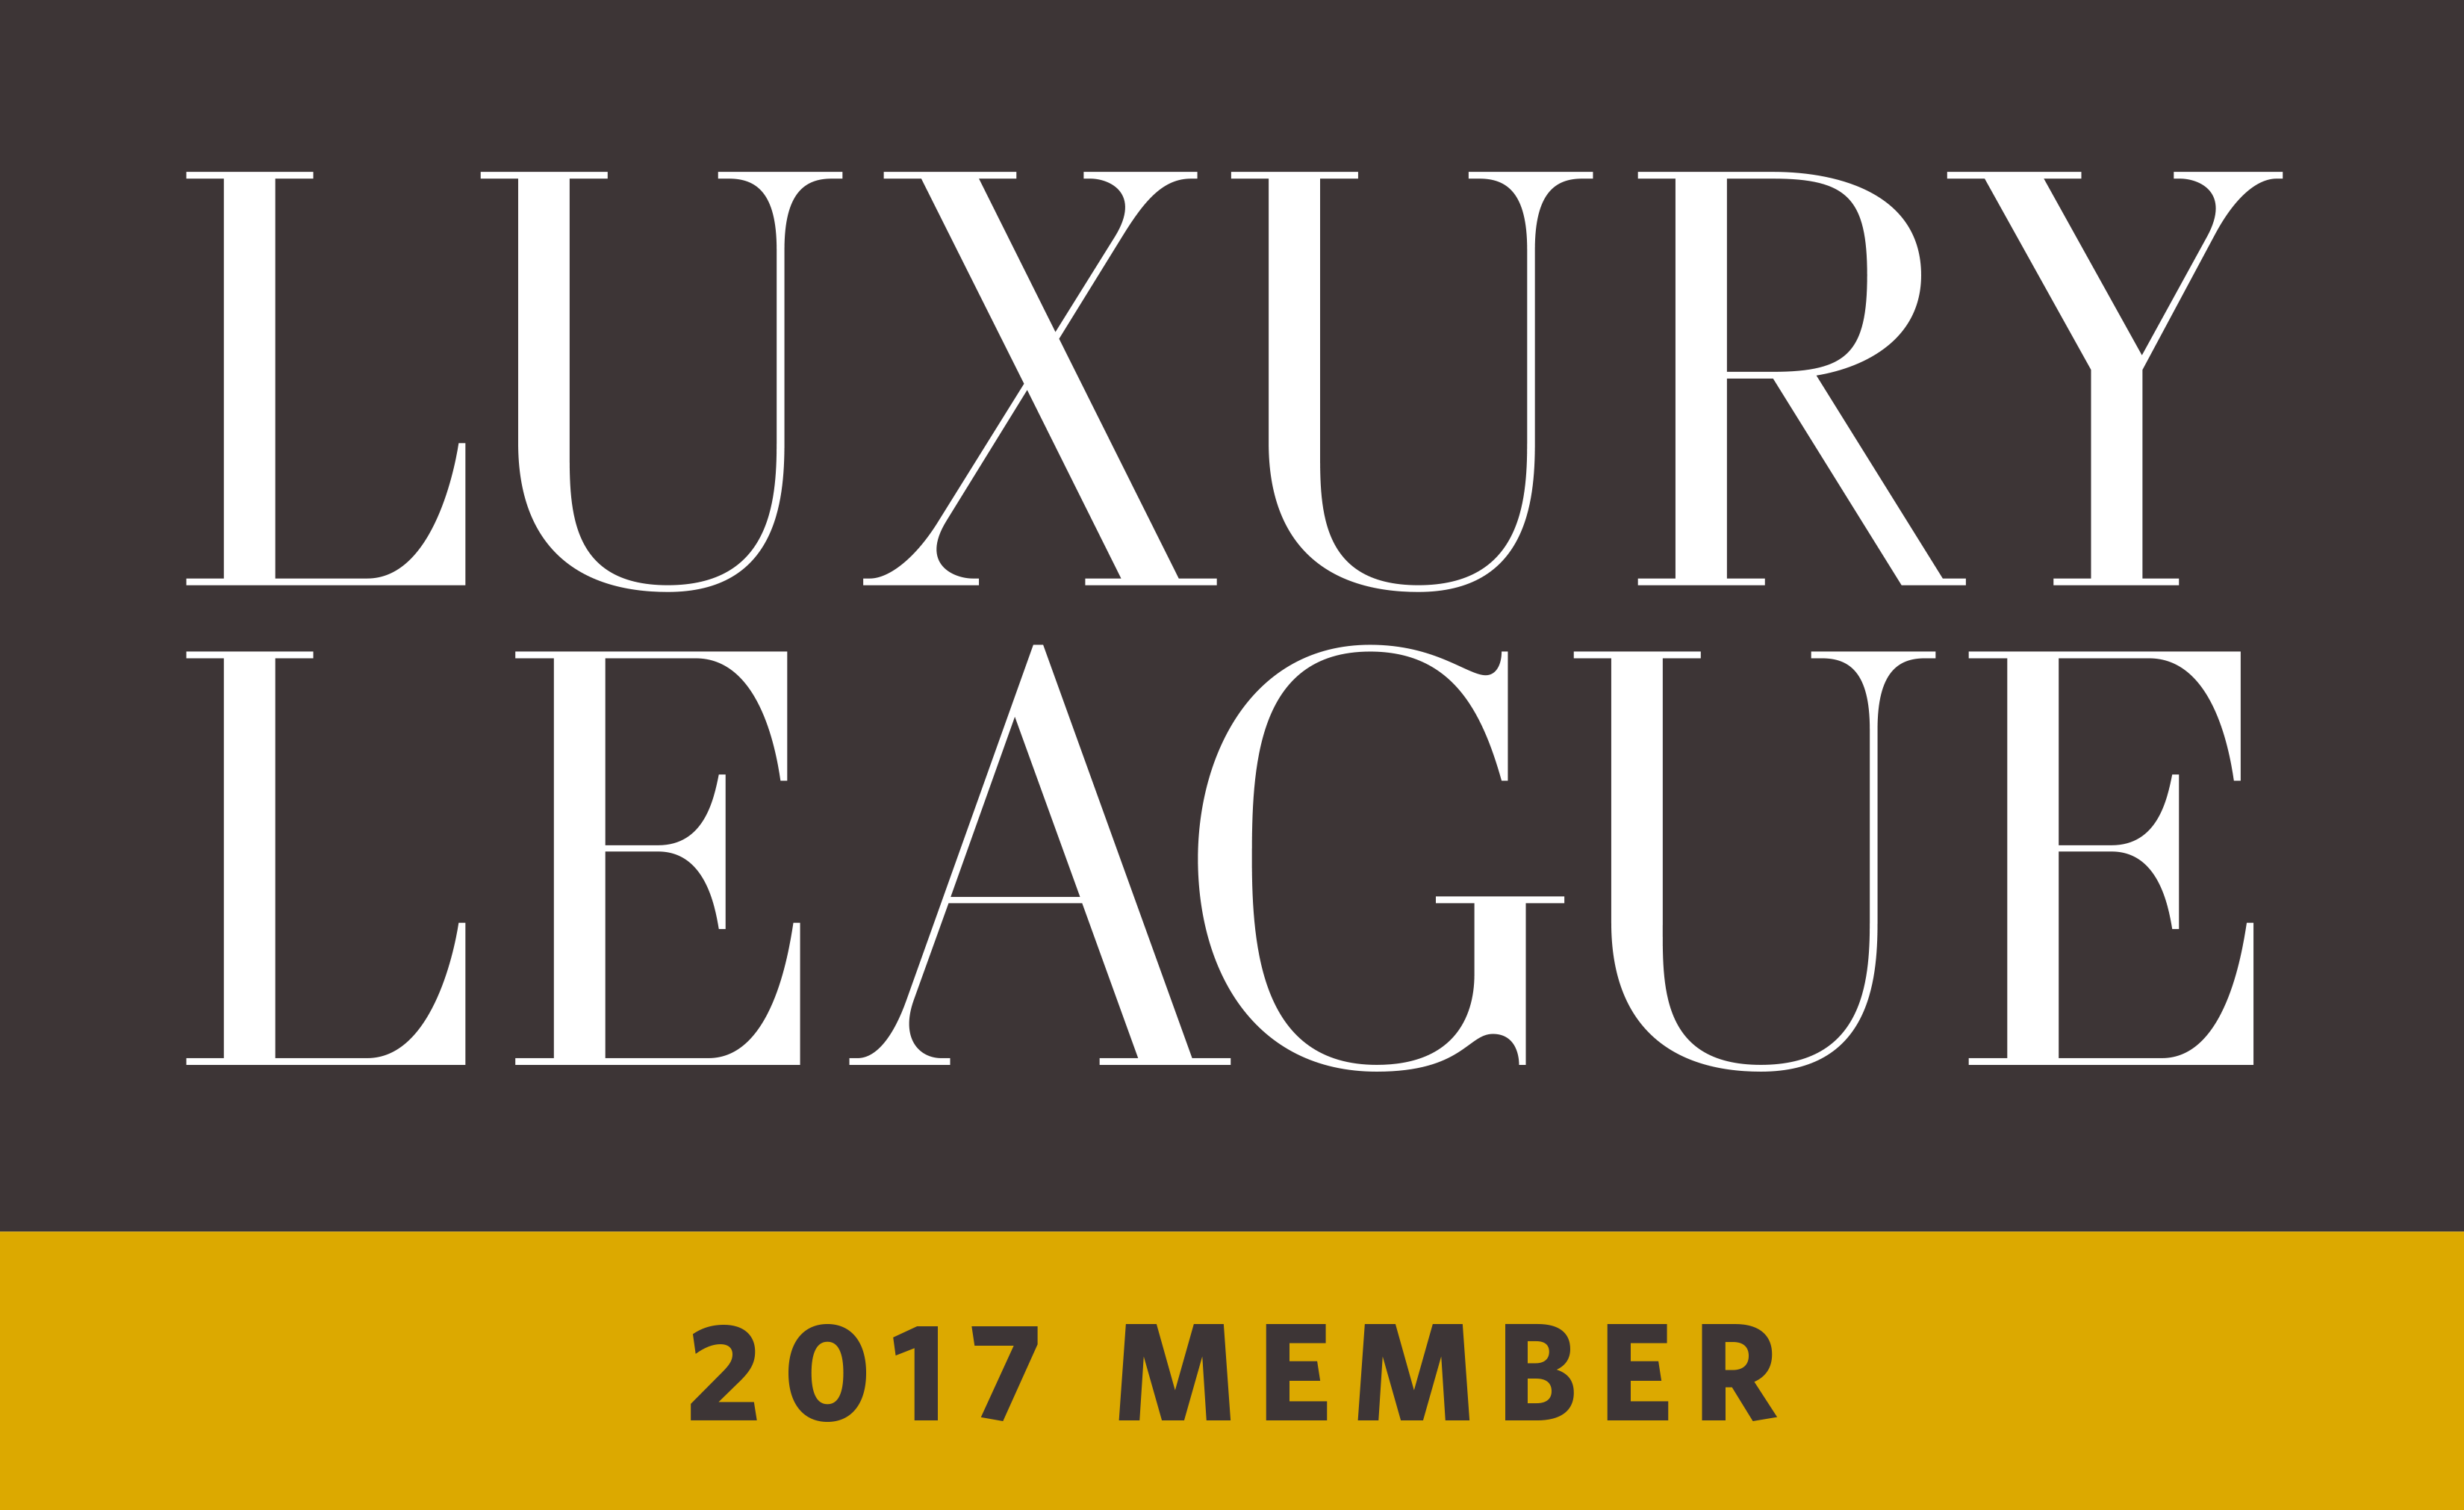 Luxury League Member